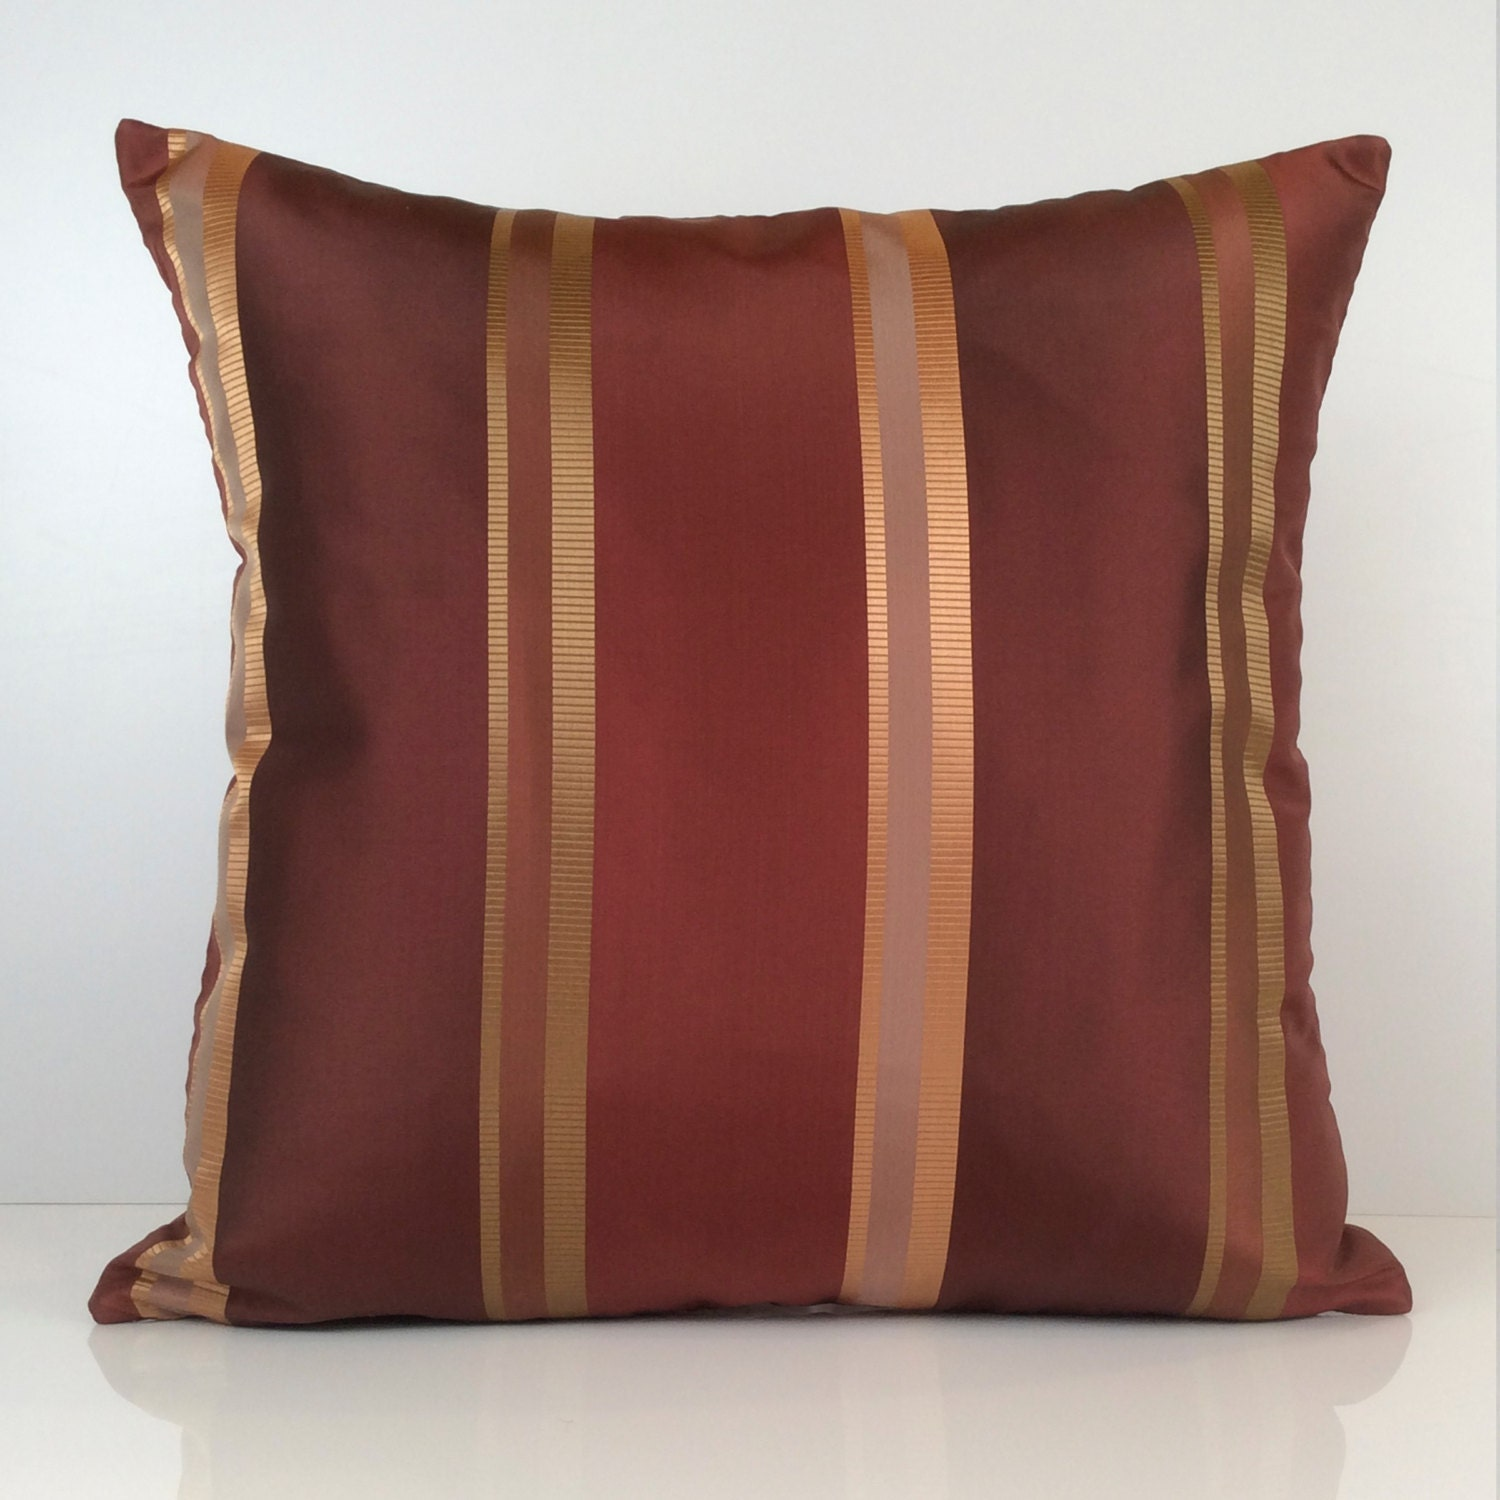 Burgundy Colored Throw Pillows : Burgundy Copper Pillow Throw Pillow Cover Decorative Pillow